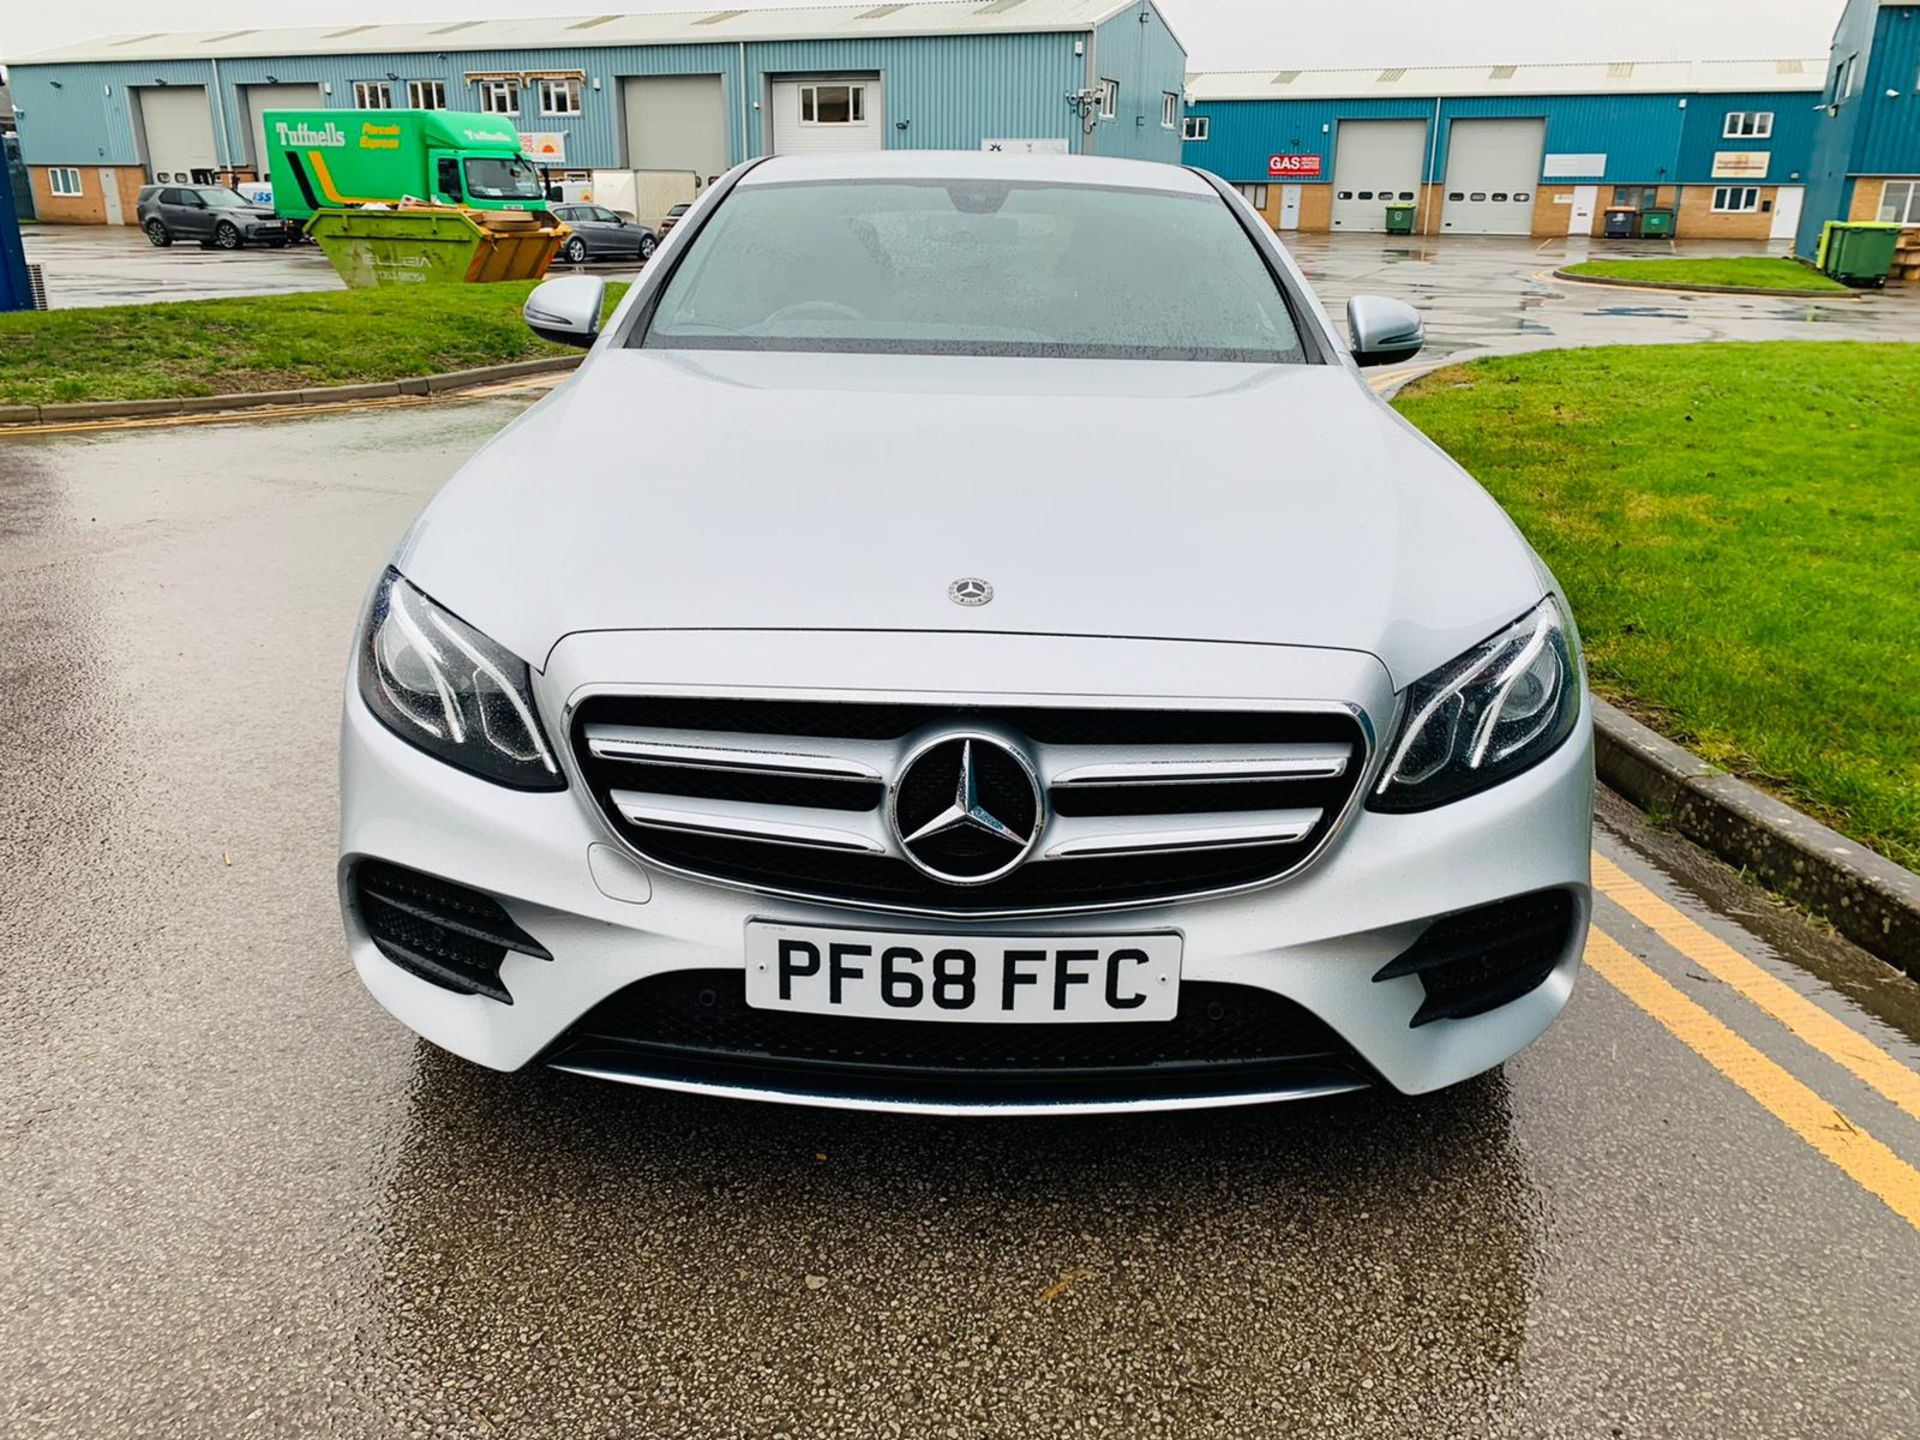 (Reserve Met)Mercedes E220d AMG Line Auto 9G Tronic - 2019 Reg - Reversing Cam - 1 Owner From New - Image 4 of 30